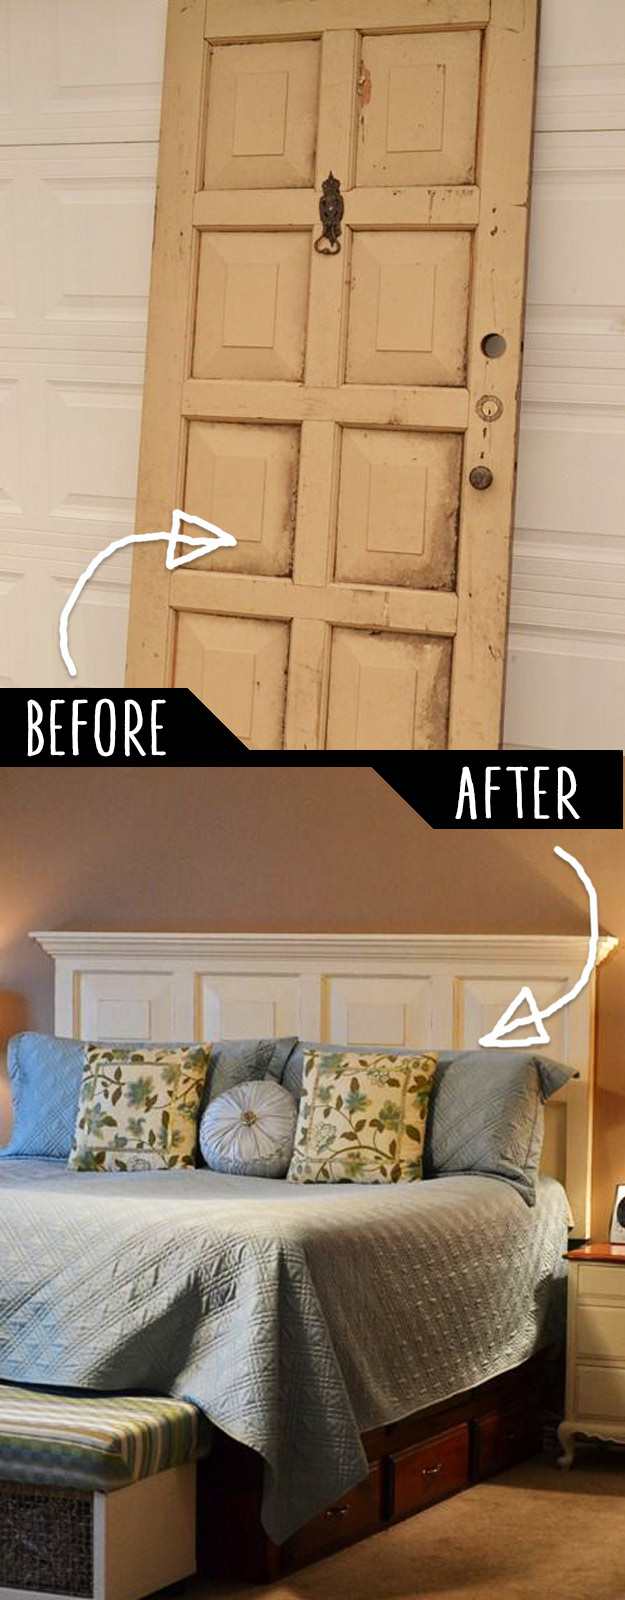 Making A Bed Headboard From Old Door | DIY Tutorial